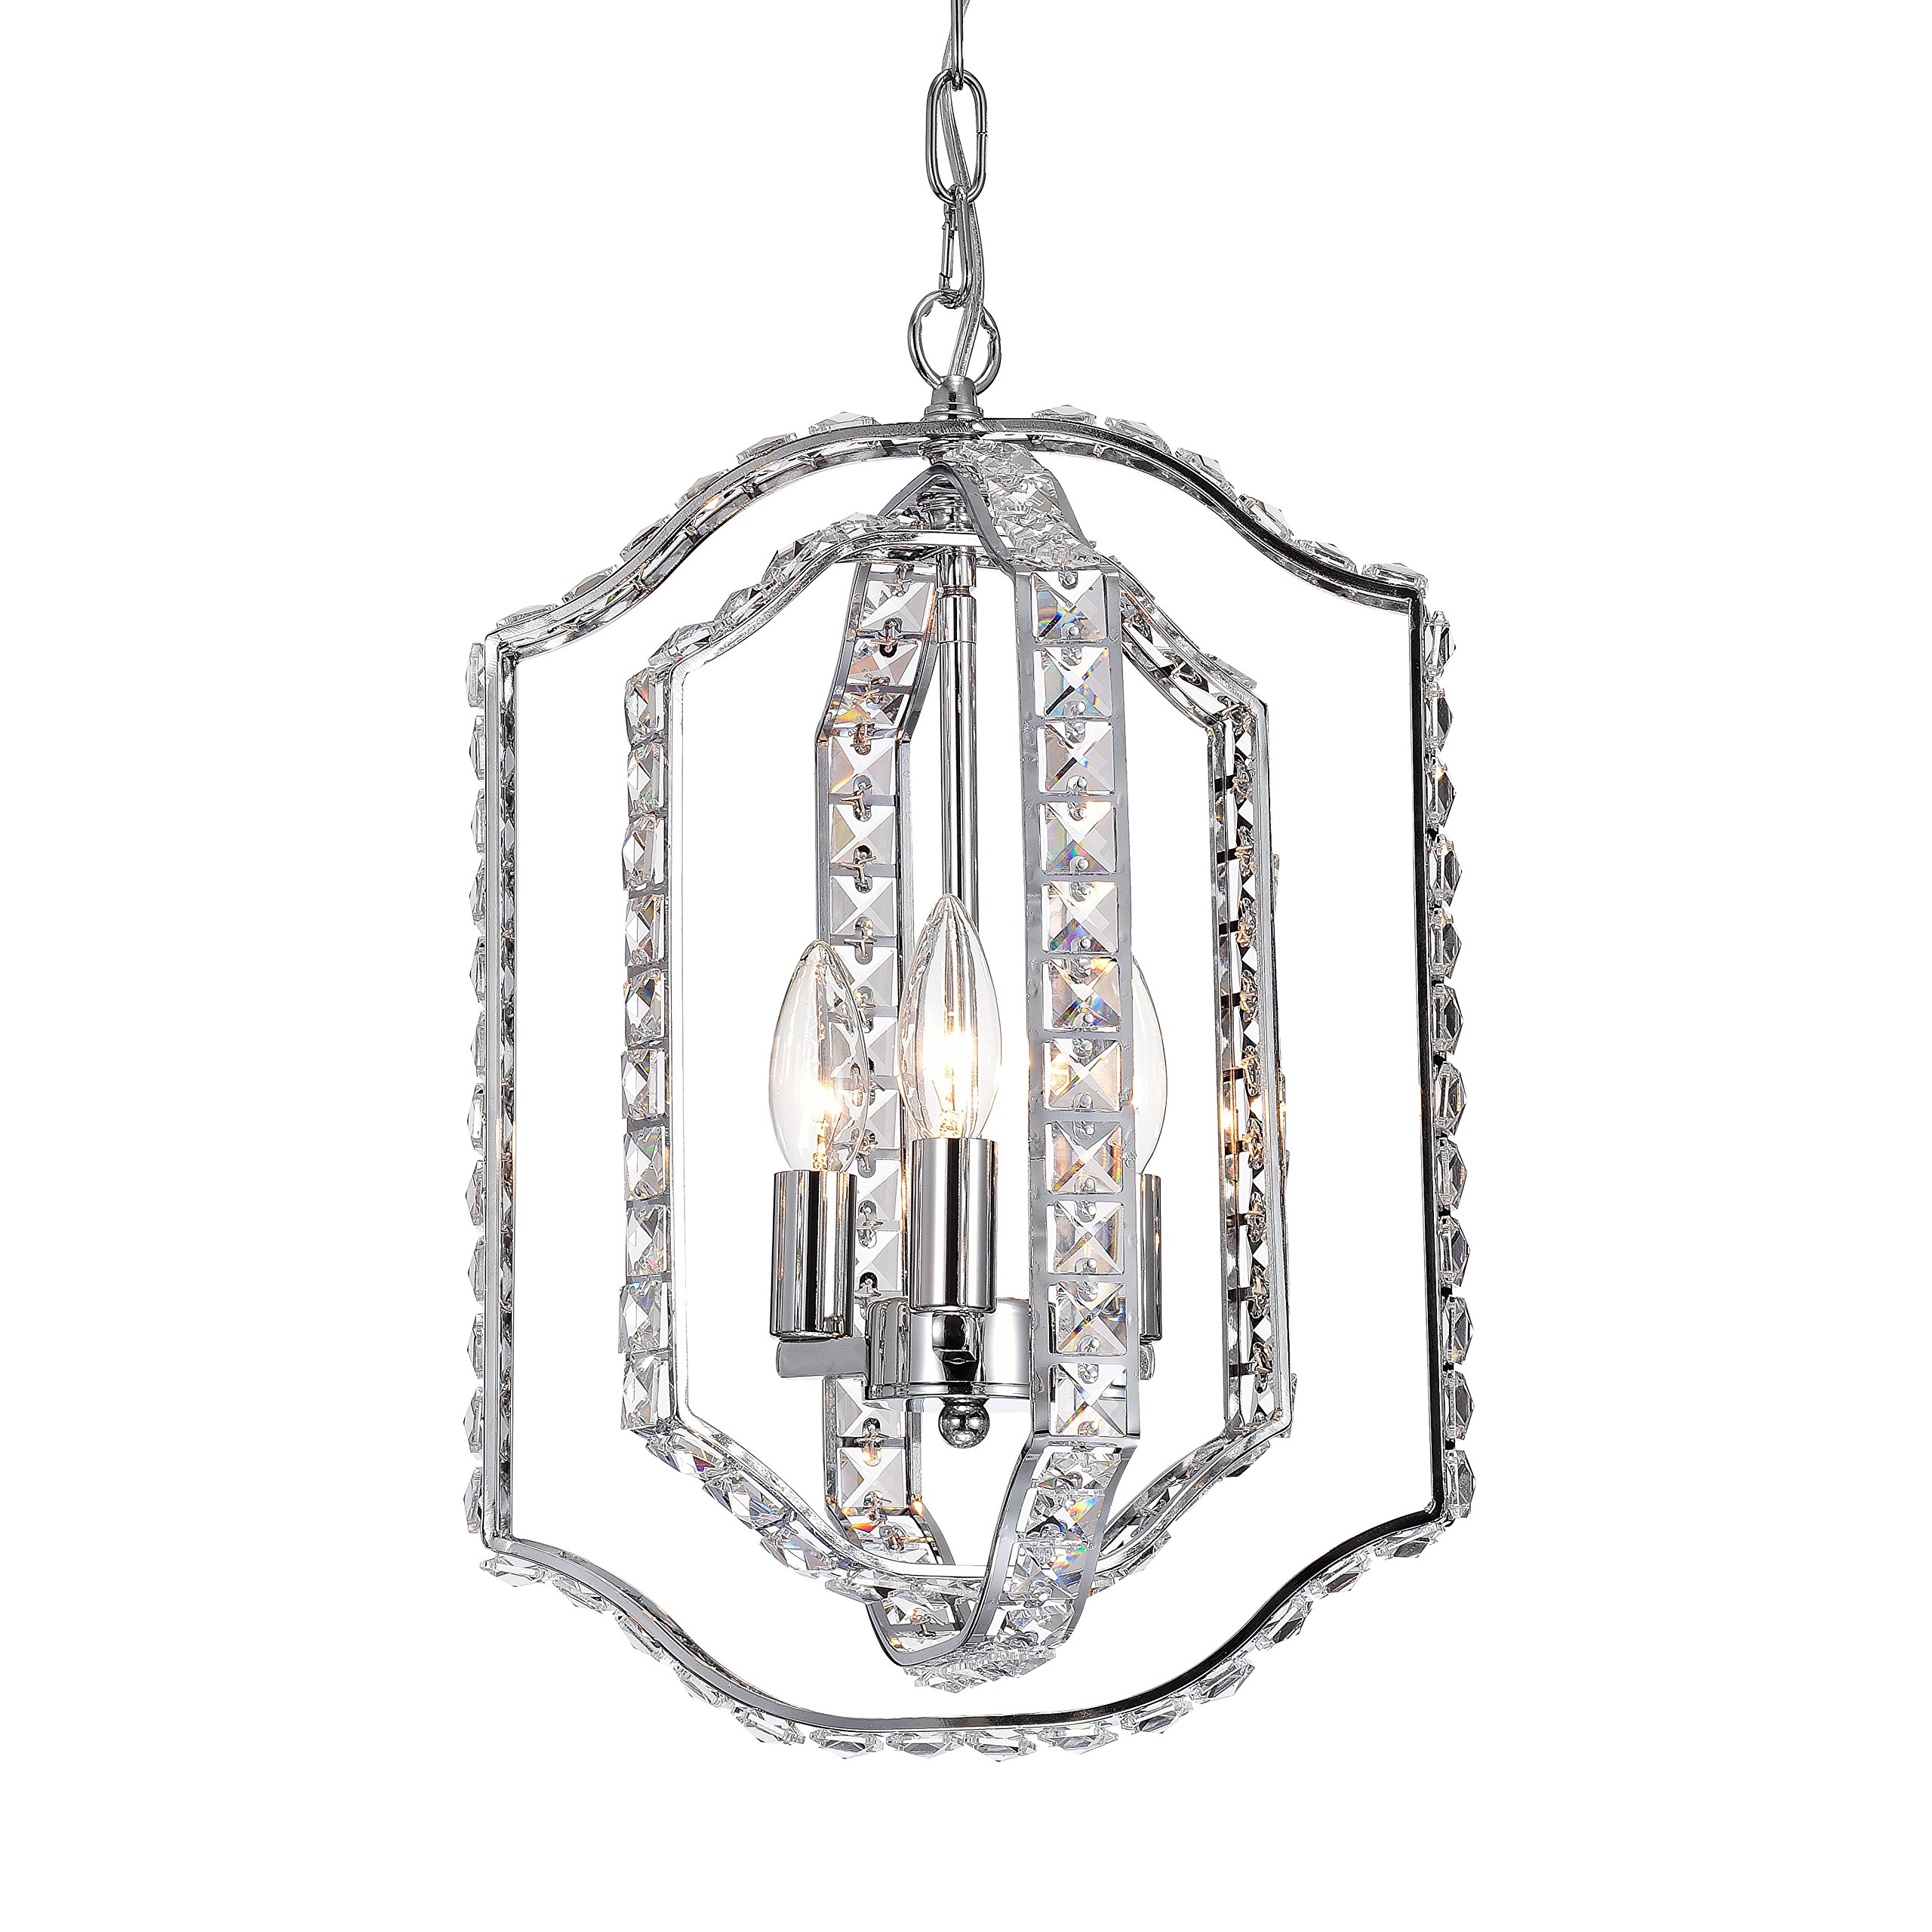 LaLuLa Crystal Chandeliers Modern Metal Chandelier Lighting 3 Lights Chrome Frame Pendant Light 17166